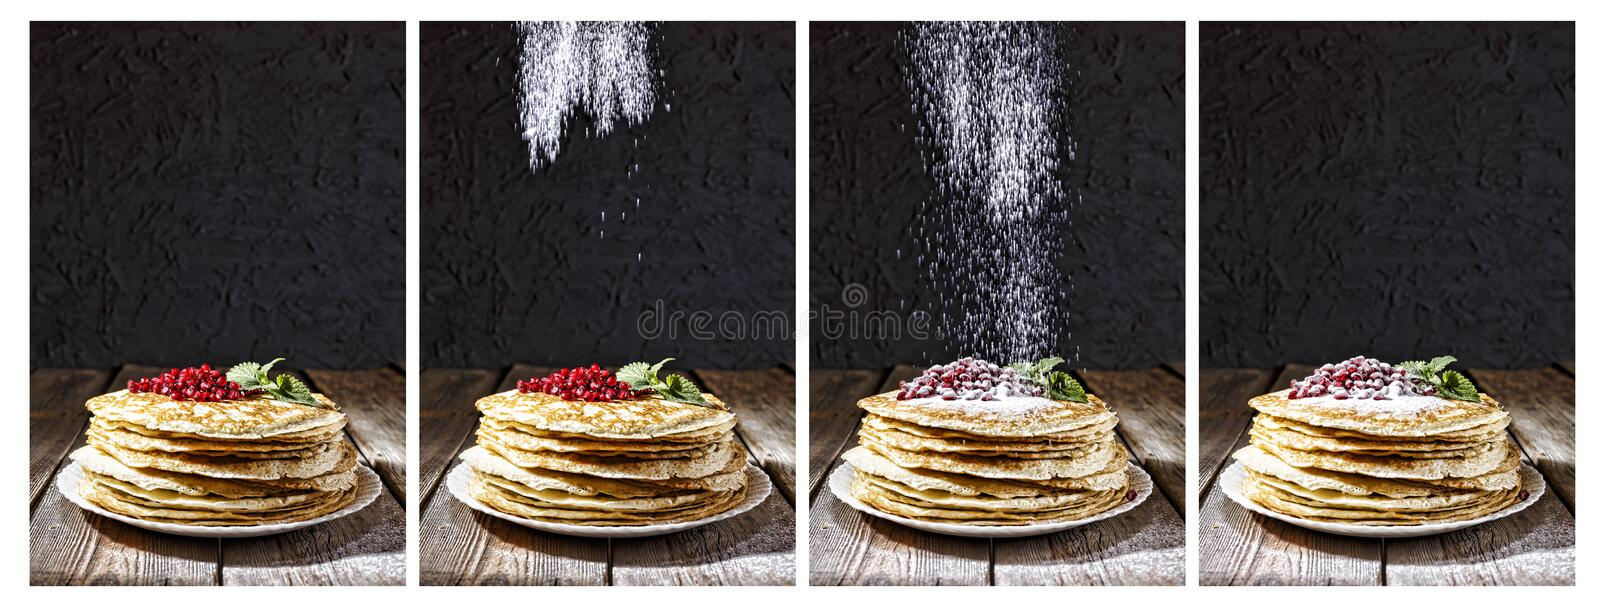 Pancakes, sprinkle, sugar powder, bakery, Maslennitsa, Mardi Gras. Pancakes with berries, mint leaves and powdered sugar. Authentic bakery interior, A board royalty free stock image